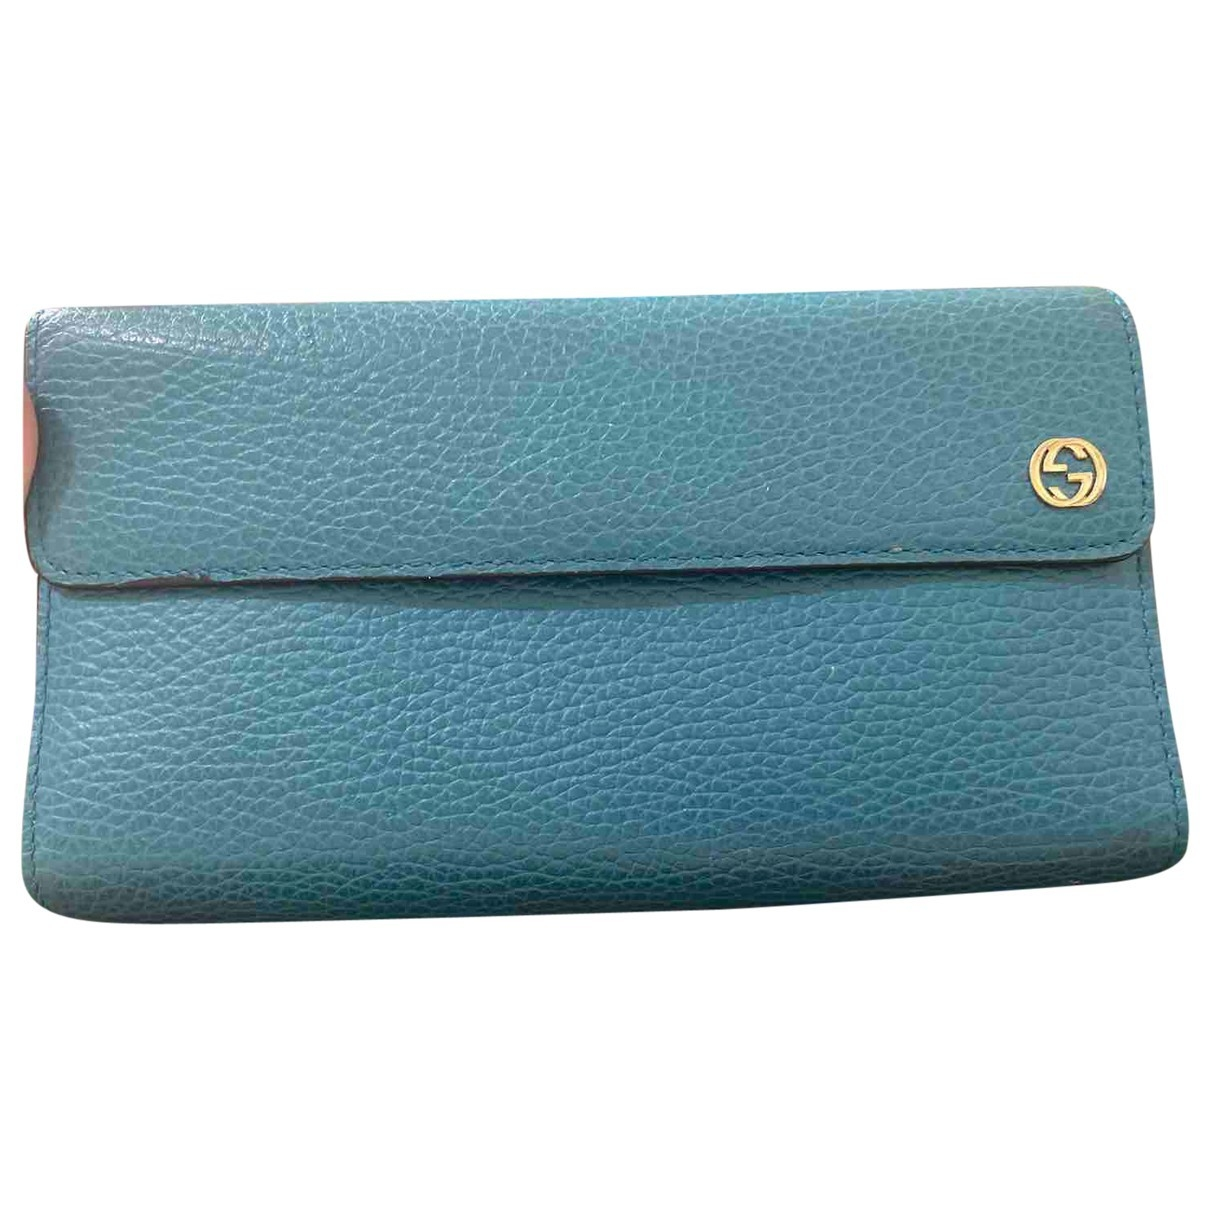 Gucci \N Turquoise Leather wallet for Women \N